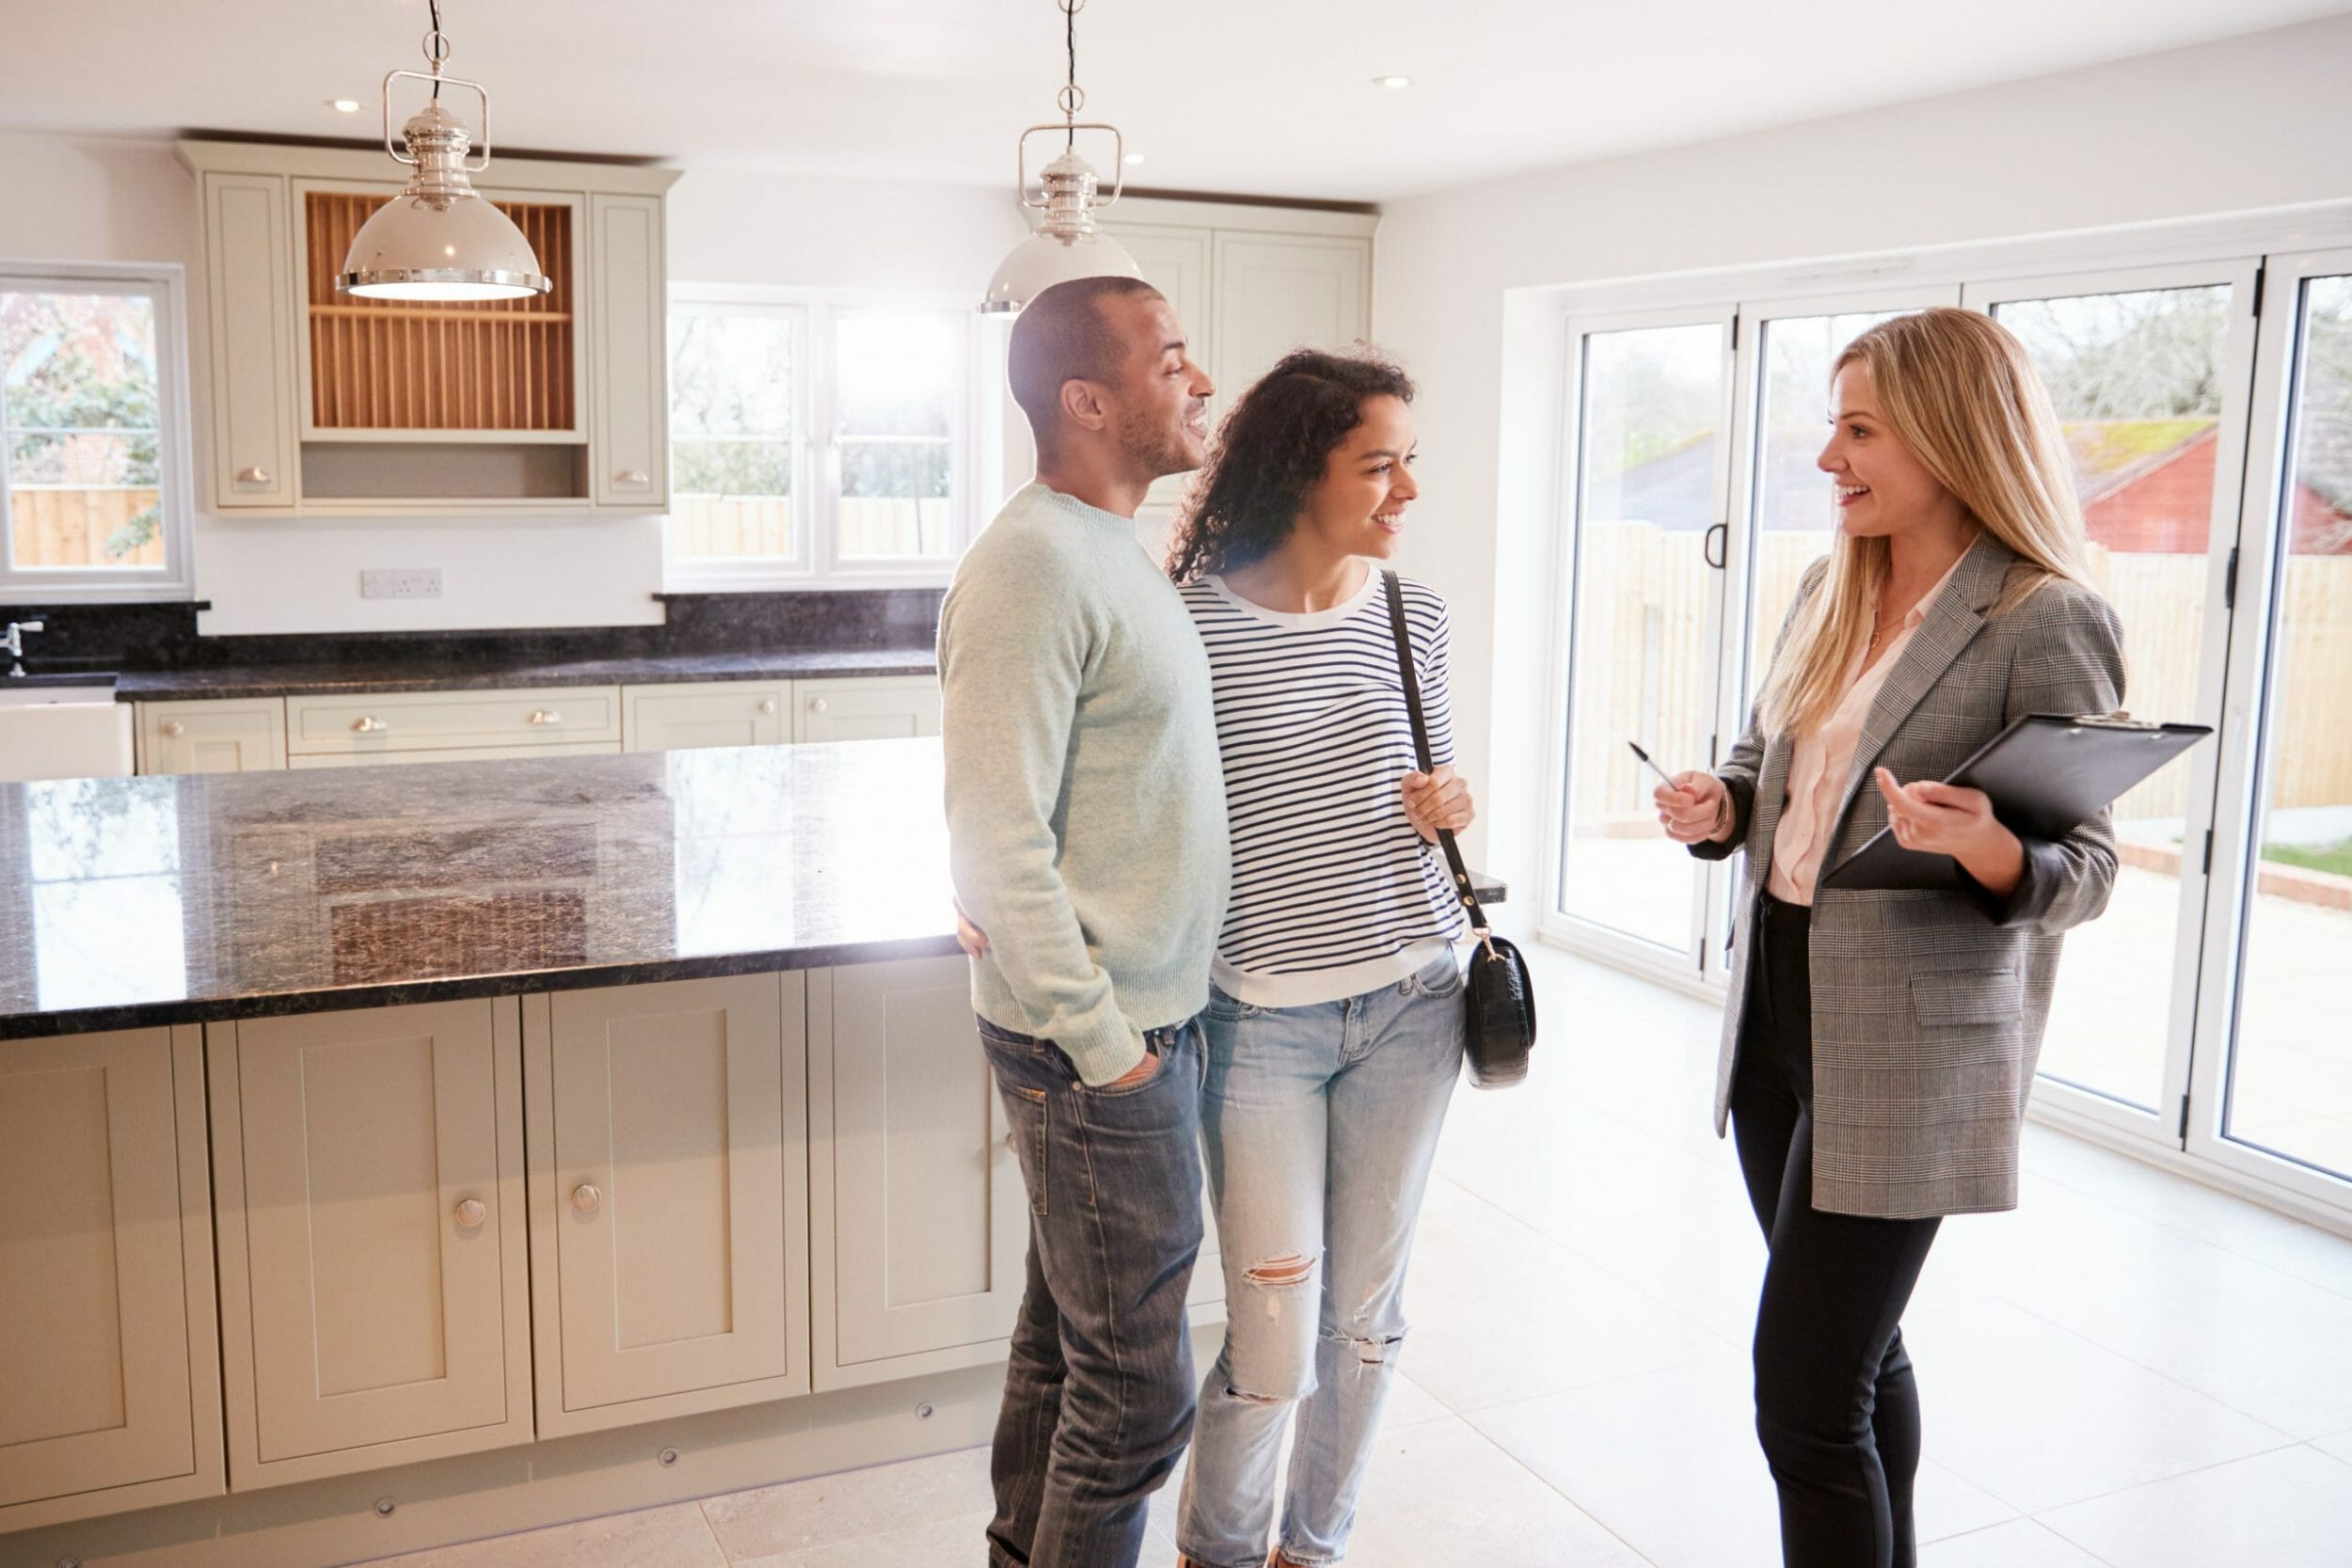 The Complete Guide To Increase Referrals From Realtors